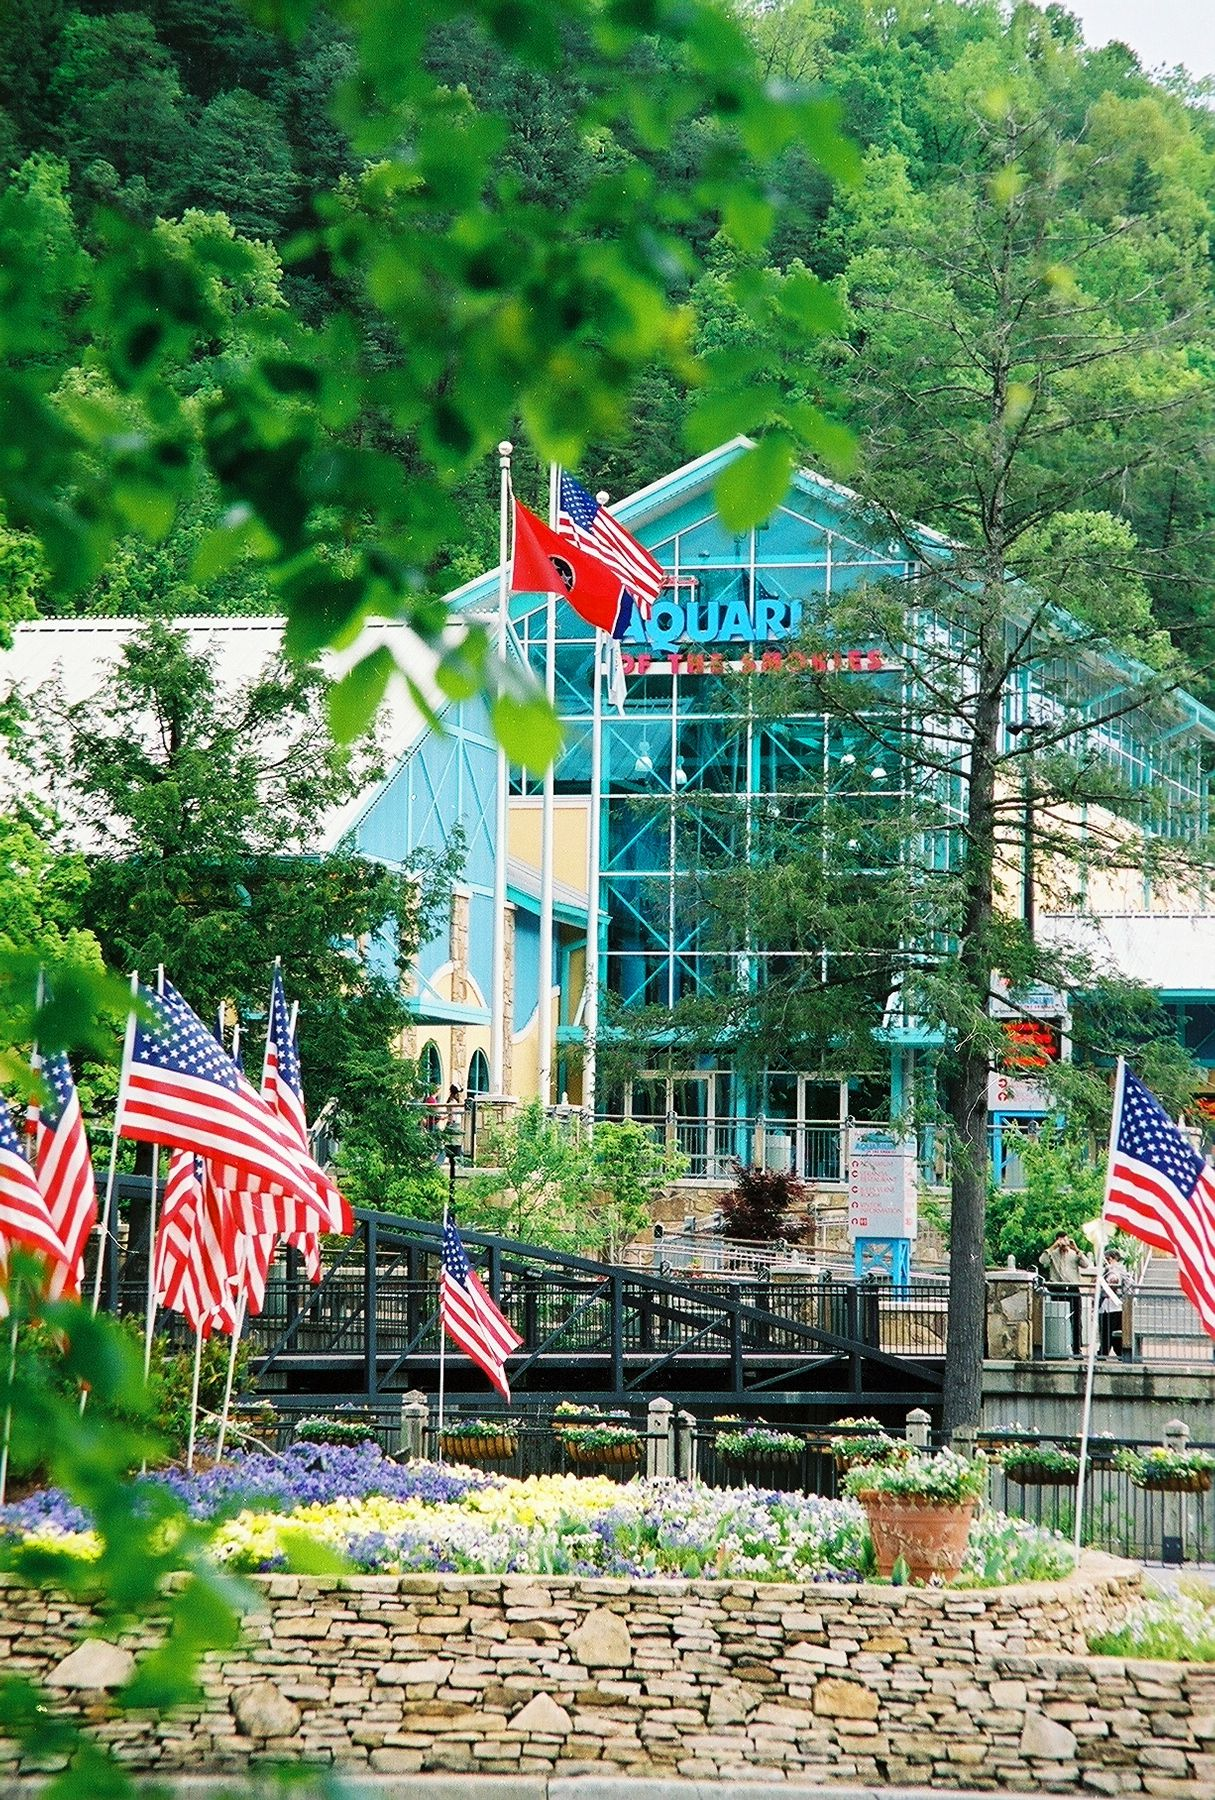 Smoky Mountain Attractions - In Pigeon Forge